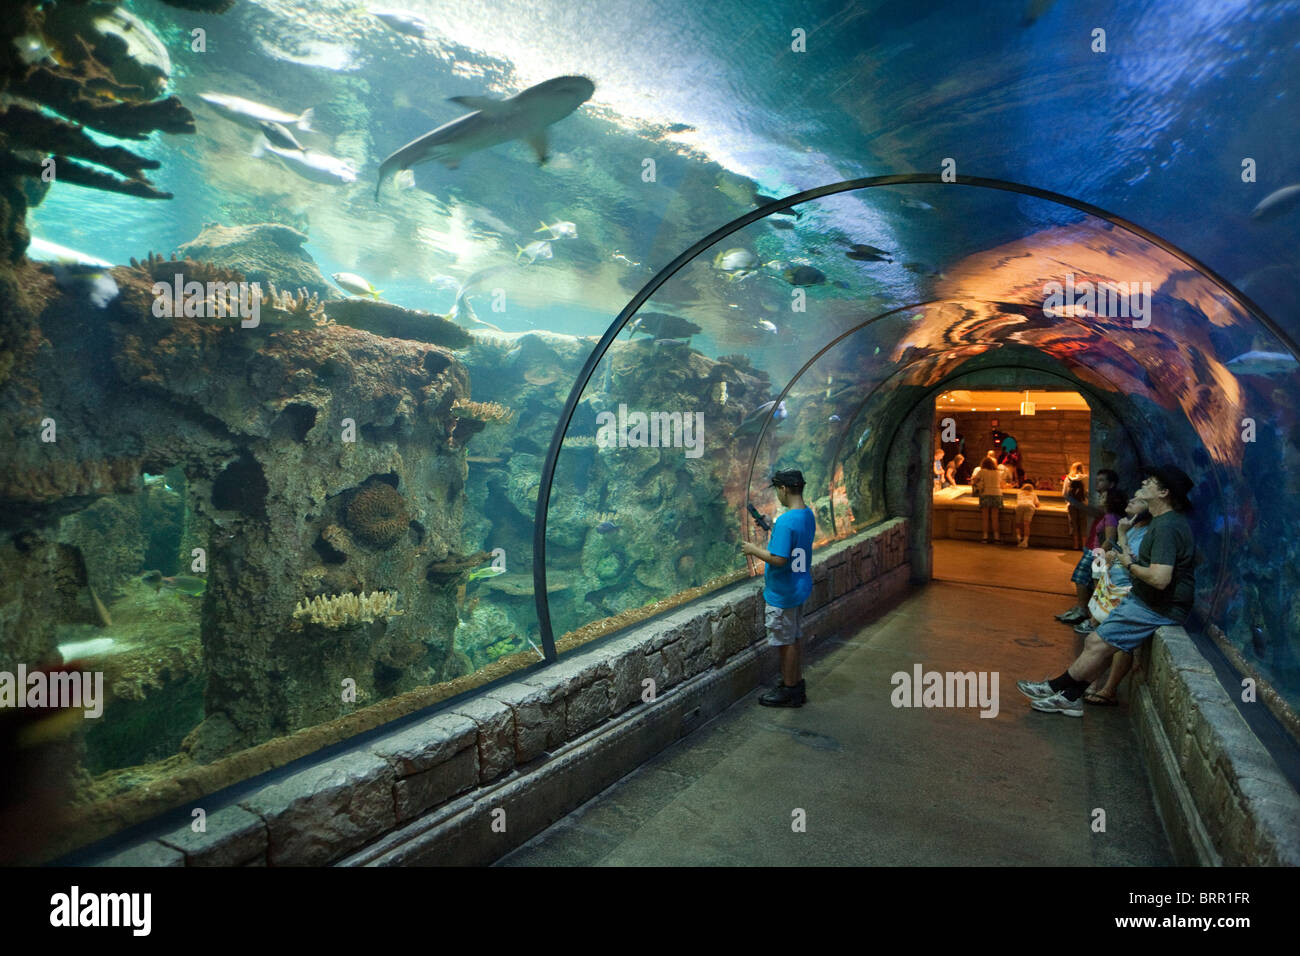 People in the tunnel  watching the sharks, Shark Reef Aquarium, Mandalay Bay Hotel, Las Vegas USA - Stock Image